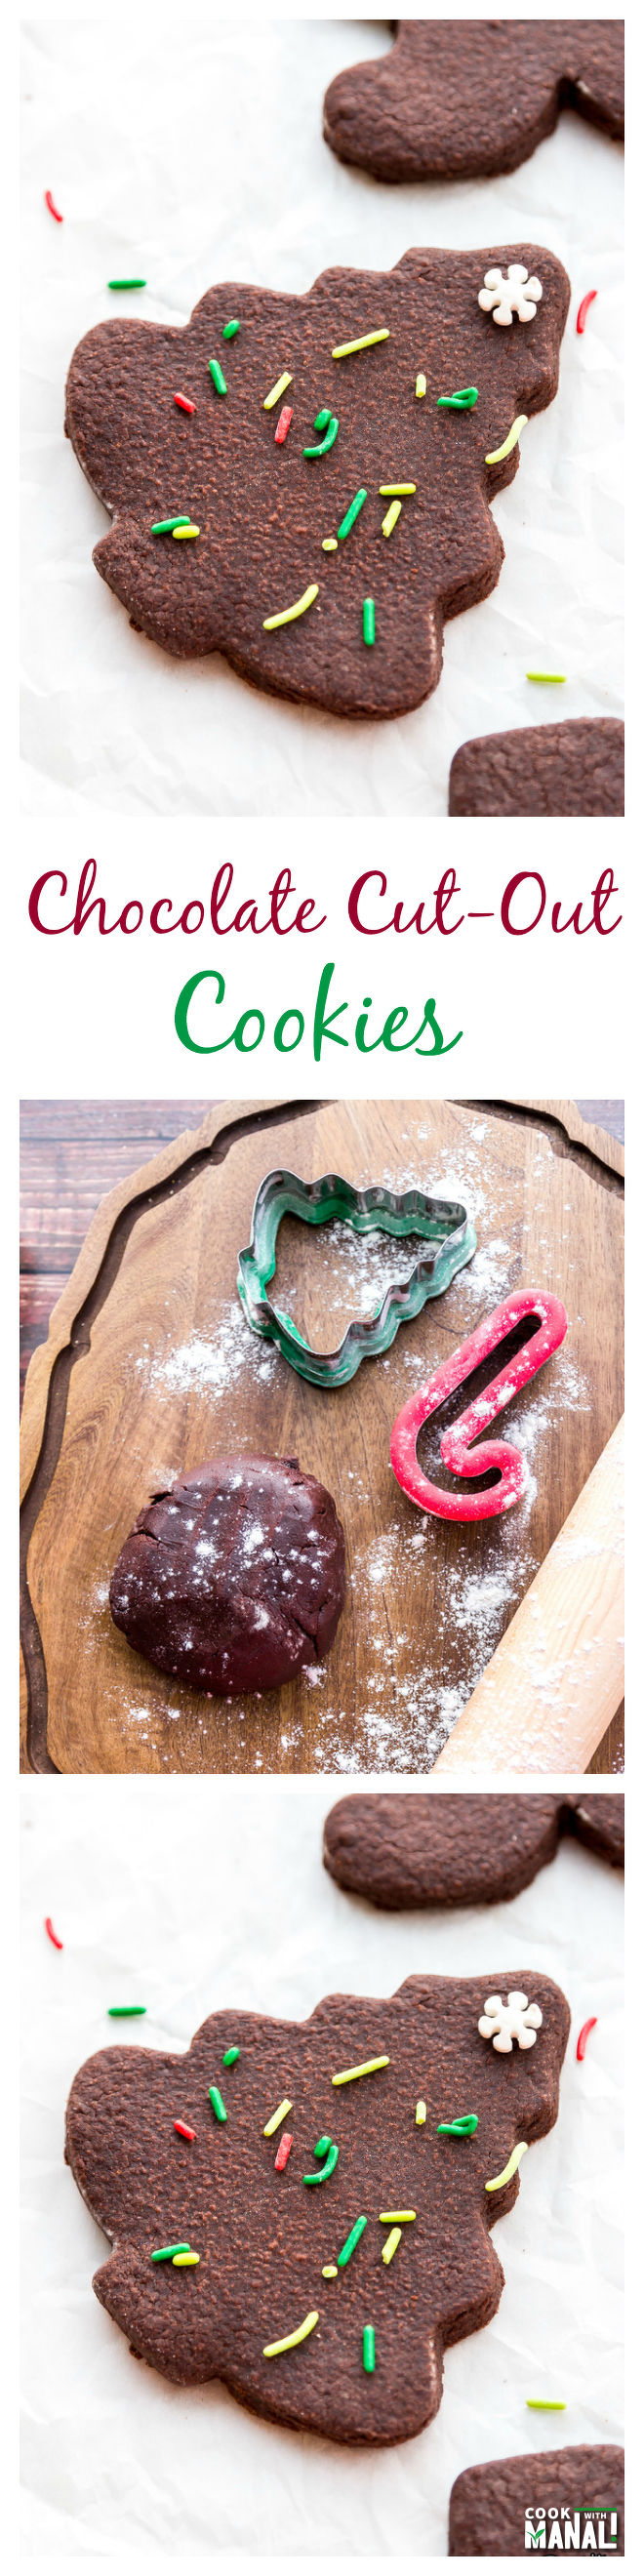 Chocolate Cut-Out Cookies Collage